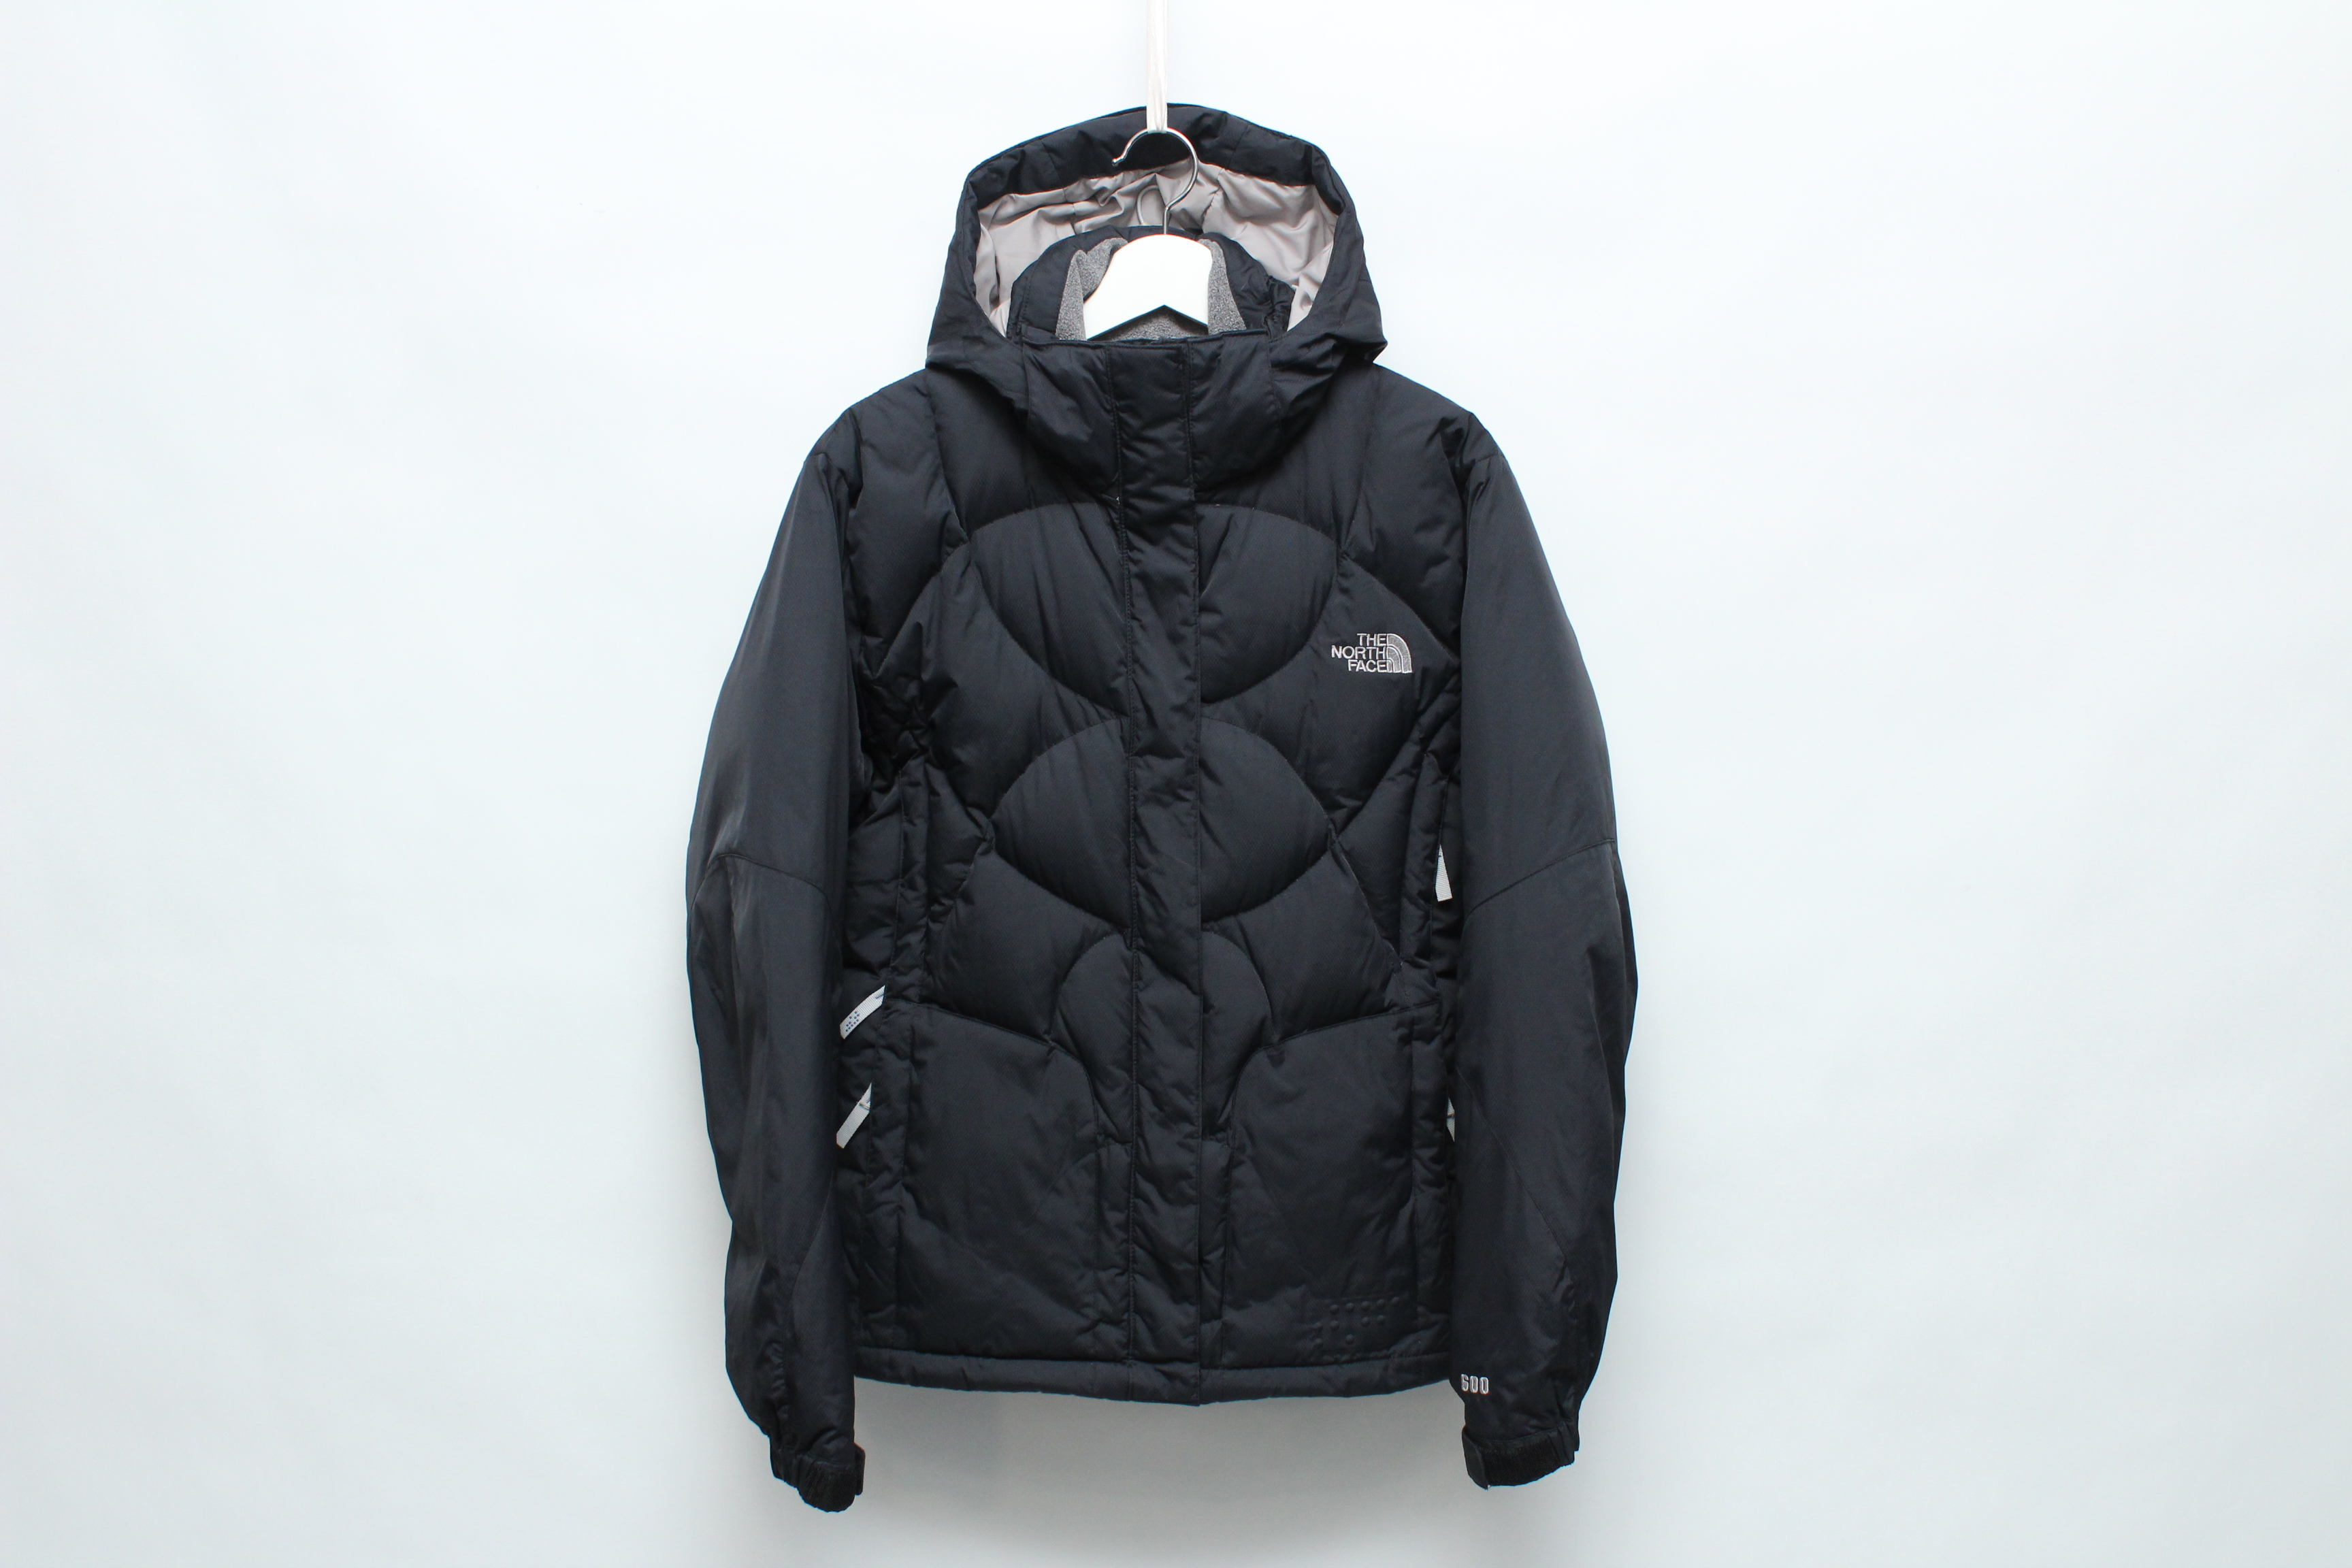 4e44fdfe0 !! FREE SHIPPING !! The North Face 600 Down Jacket Black Size M/M TNF Rare  Vintage Luxury 🔥 Final Price 🔥 Final Drop or delete !! Need Gone ...